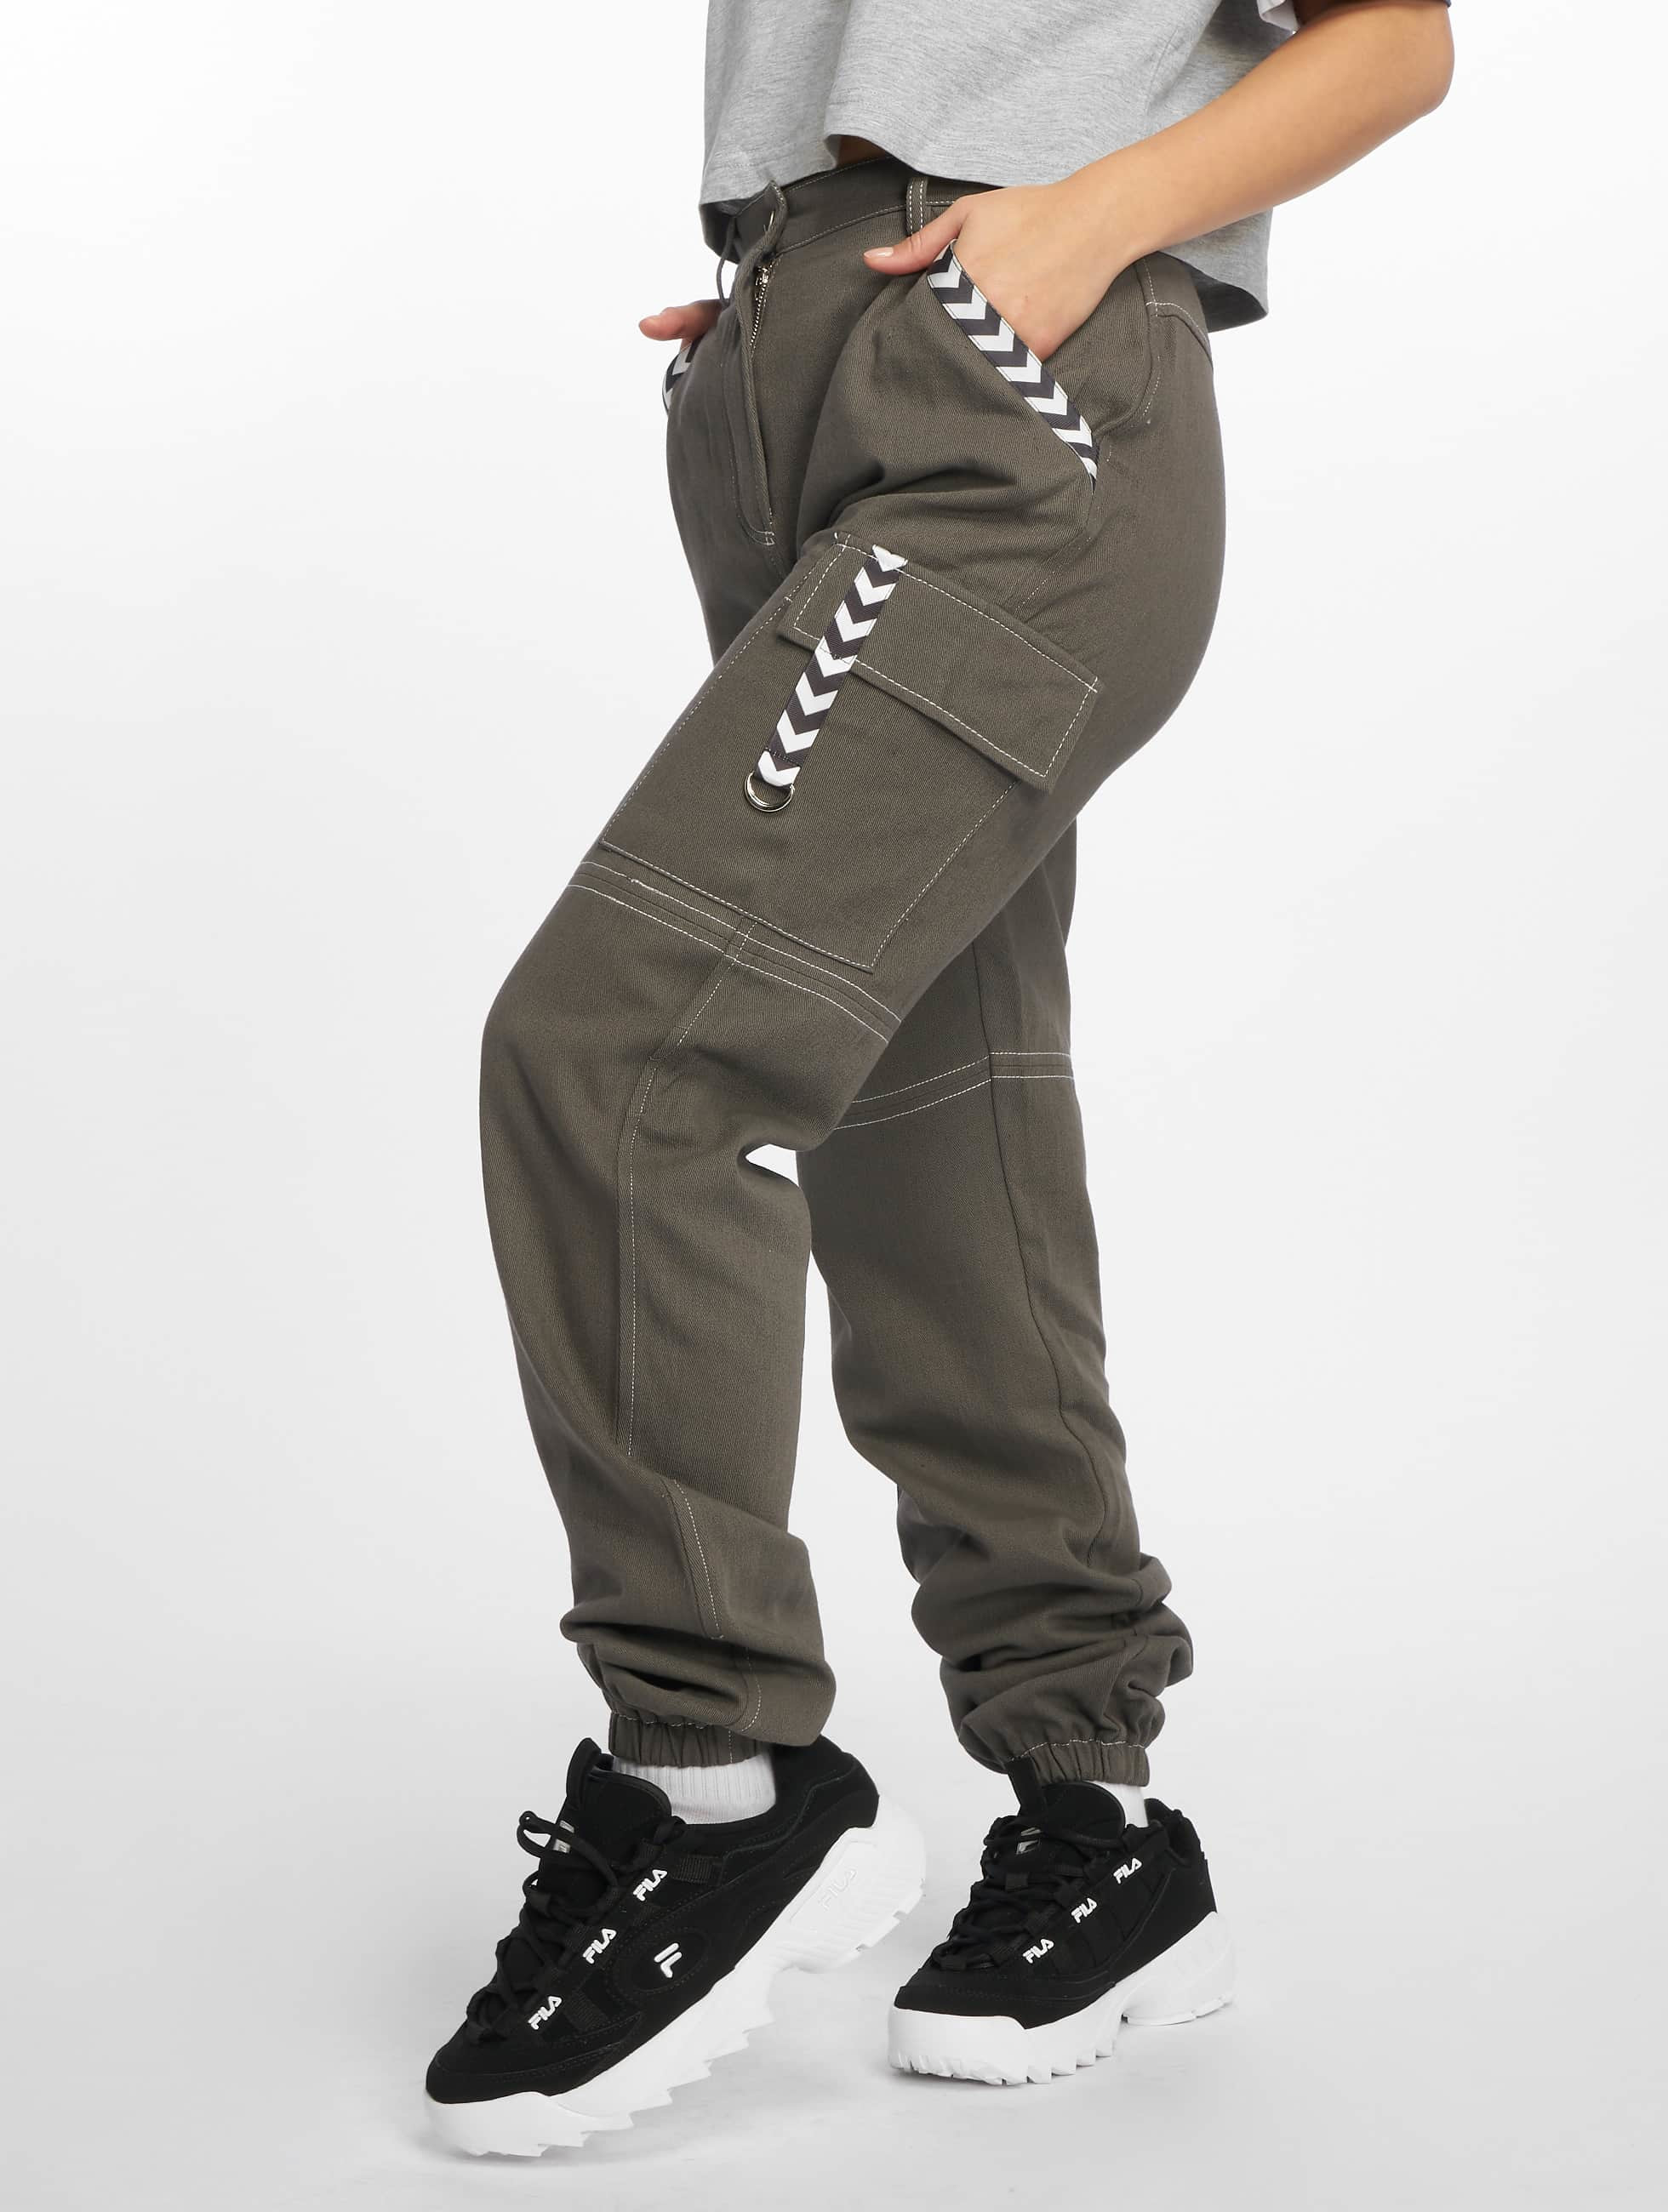 Tape Grey Missguided Trousers Sports Cargo dtQshr